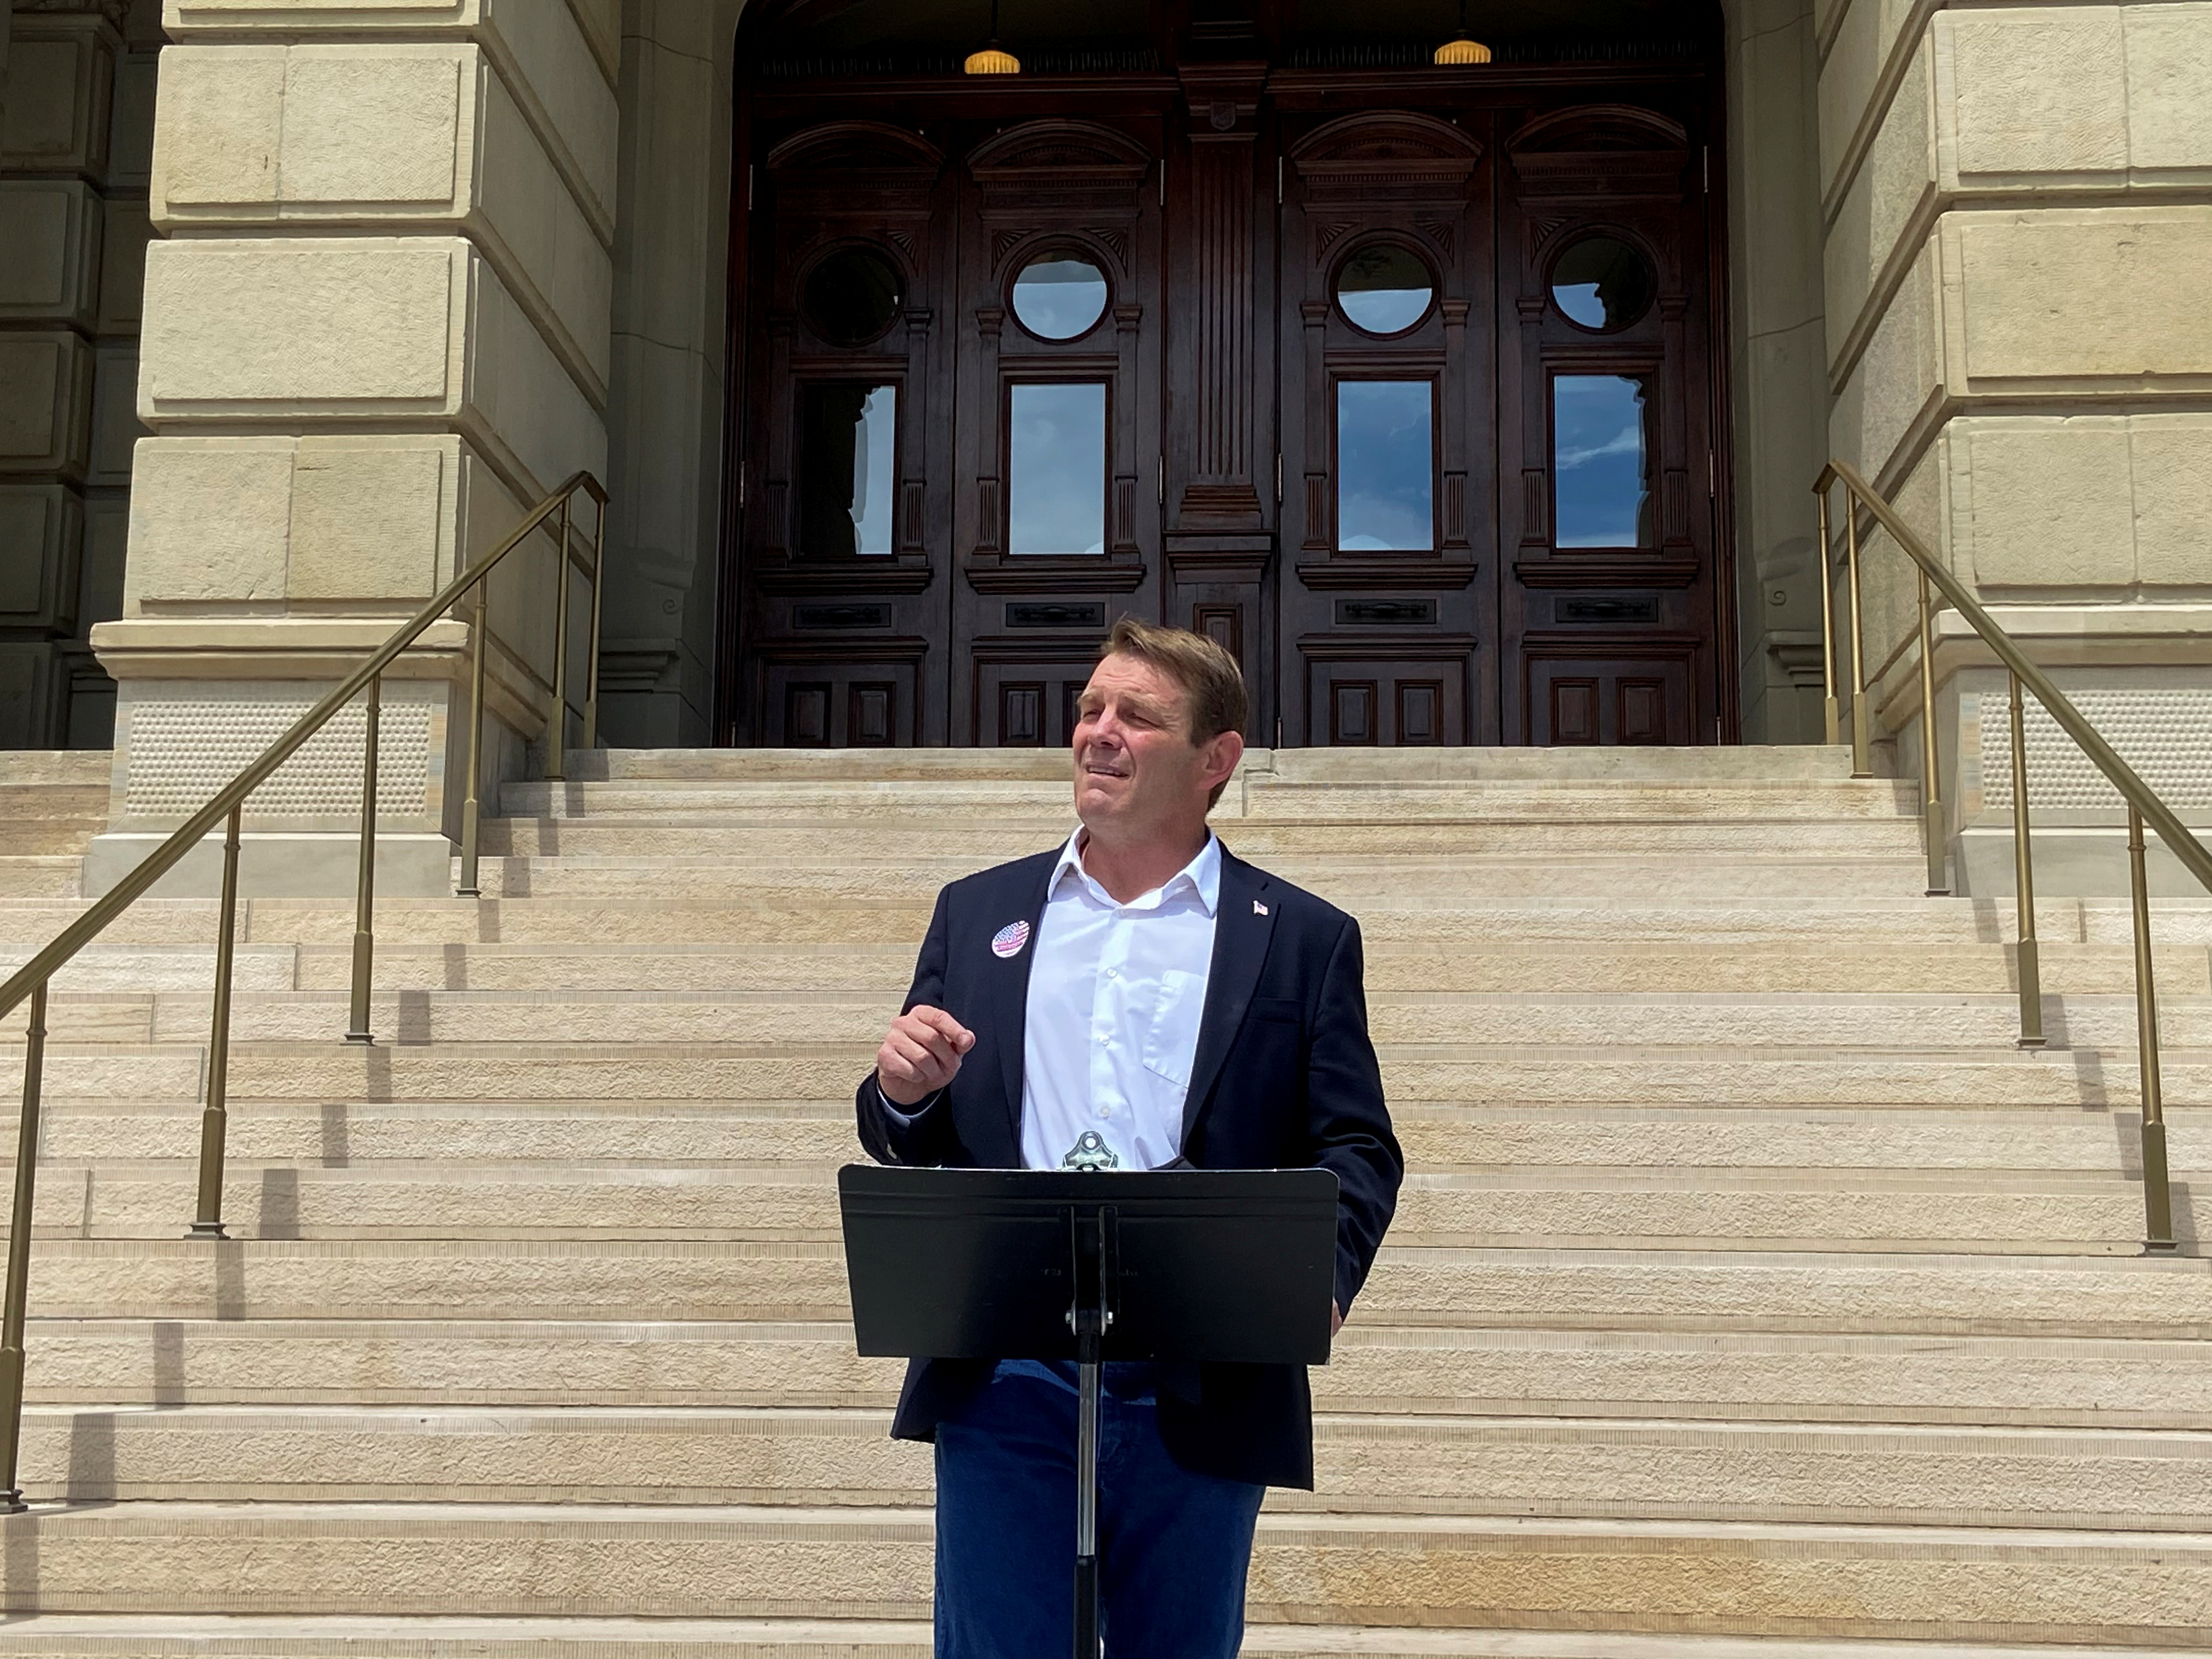 Republican attorney and businessman Darin Smith announces his primary campaign against incumbent Congresswoman Liz Cheney in front of the state Capitol in Cheyenne, Wyoming, U.S., May  7, 2021. Picture taken May  7, 2021. REUTERS/Nathan Layne